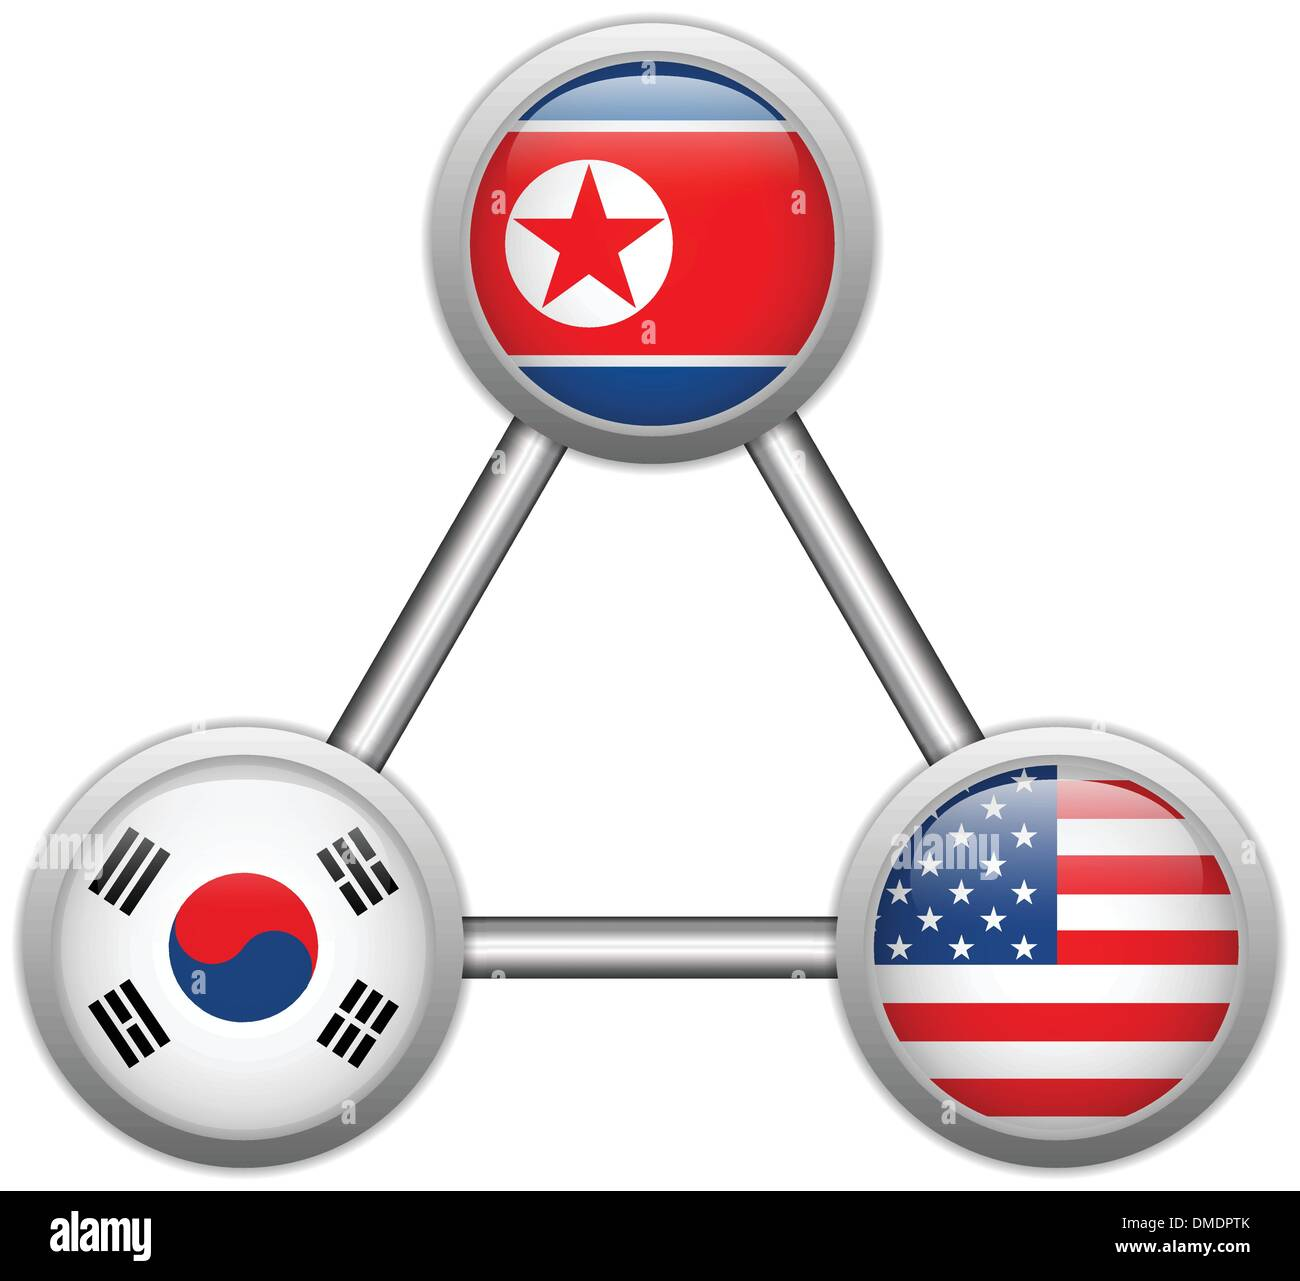 north korea usa and south korea war stock vector art illustration north korea usa and south